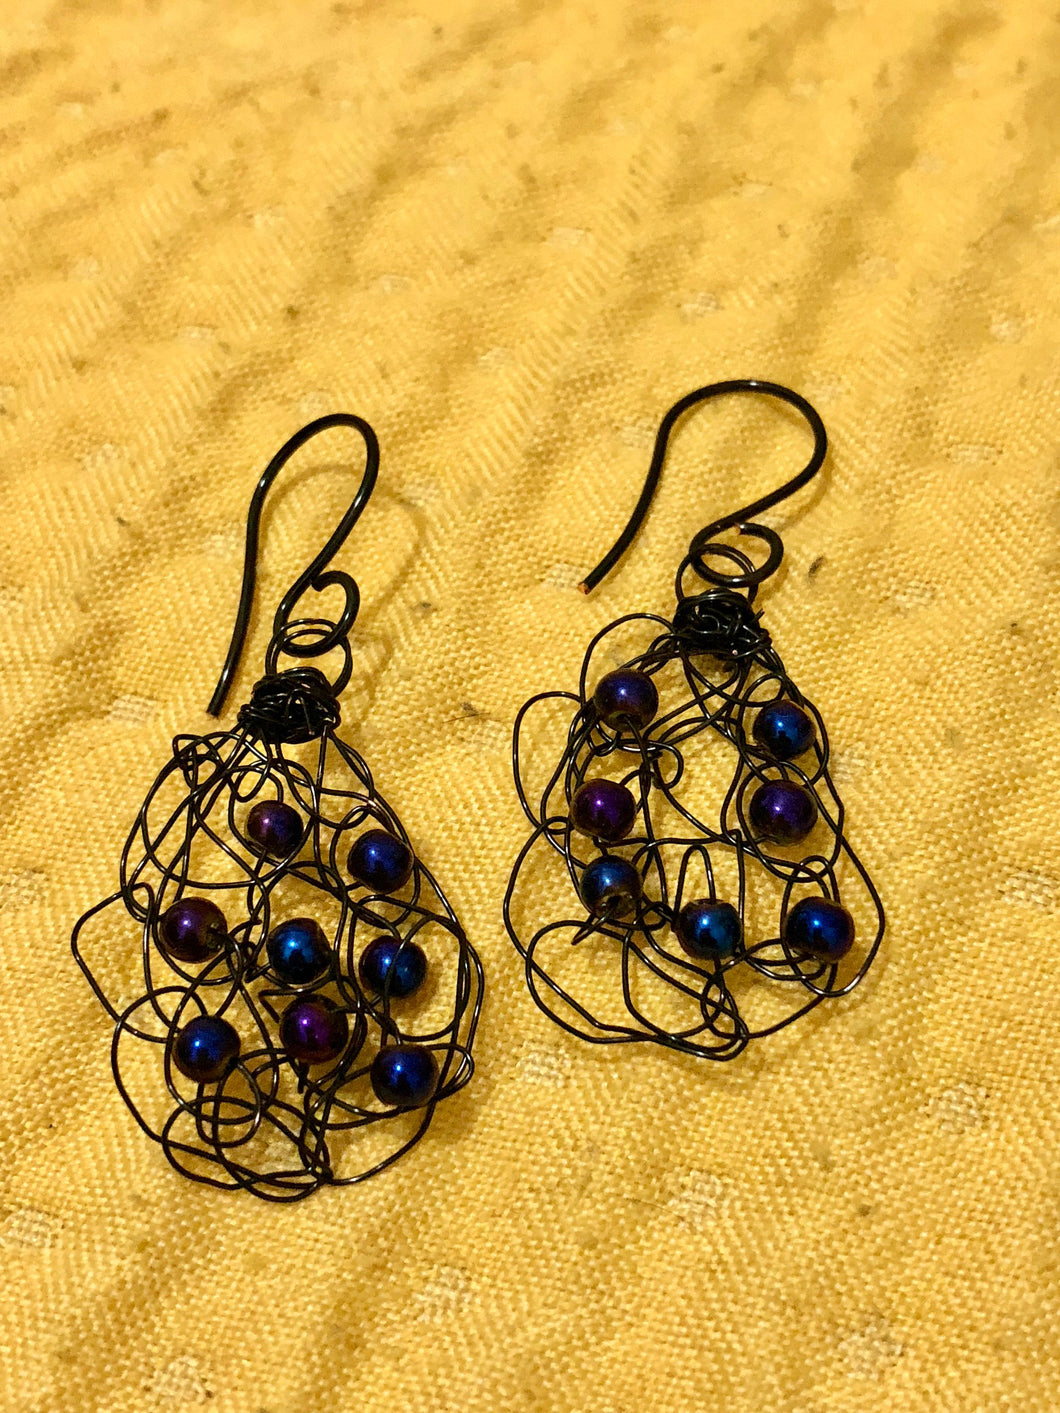 Handmade black wire crochet earrings with peacock blue pearls